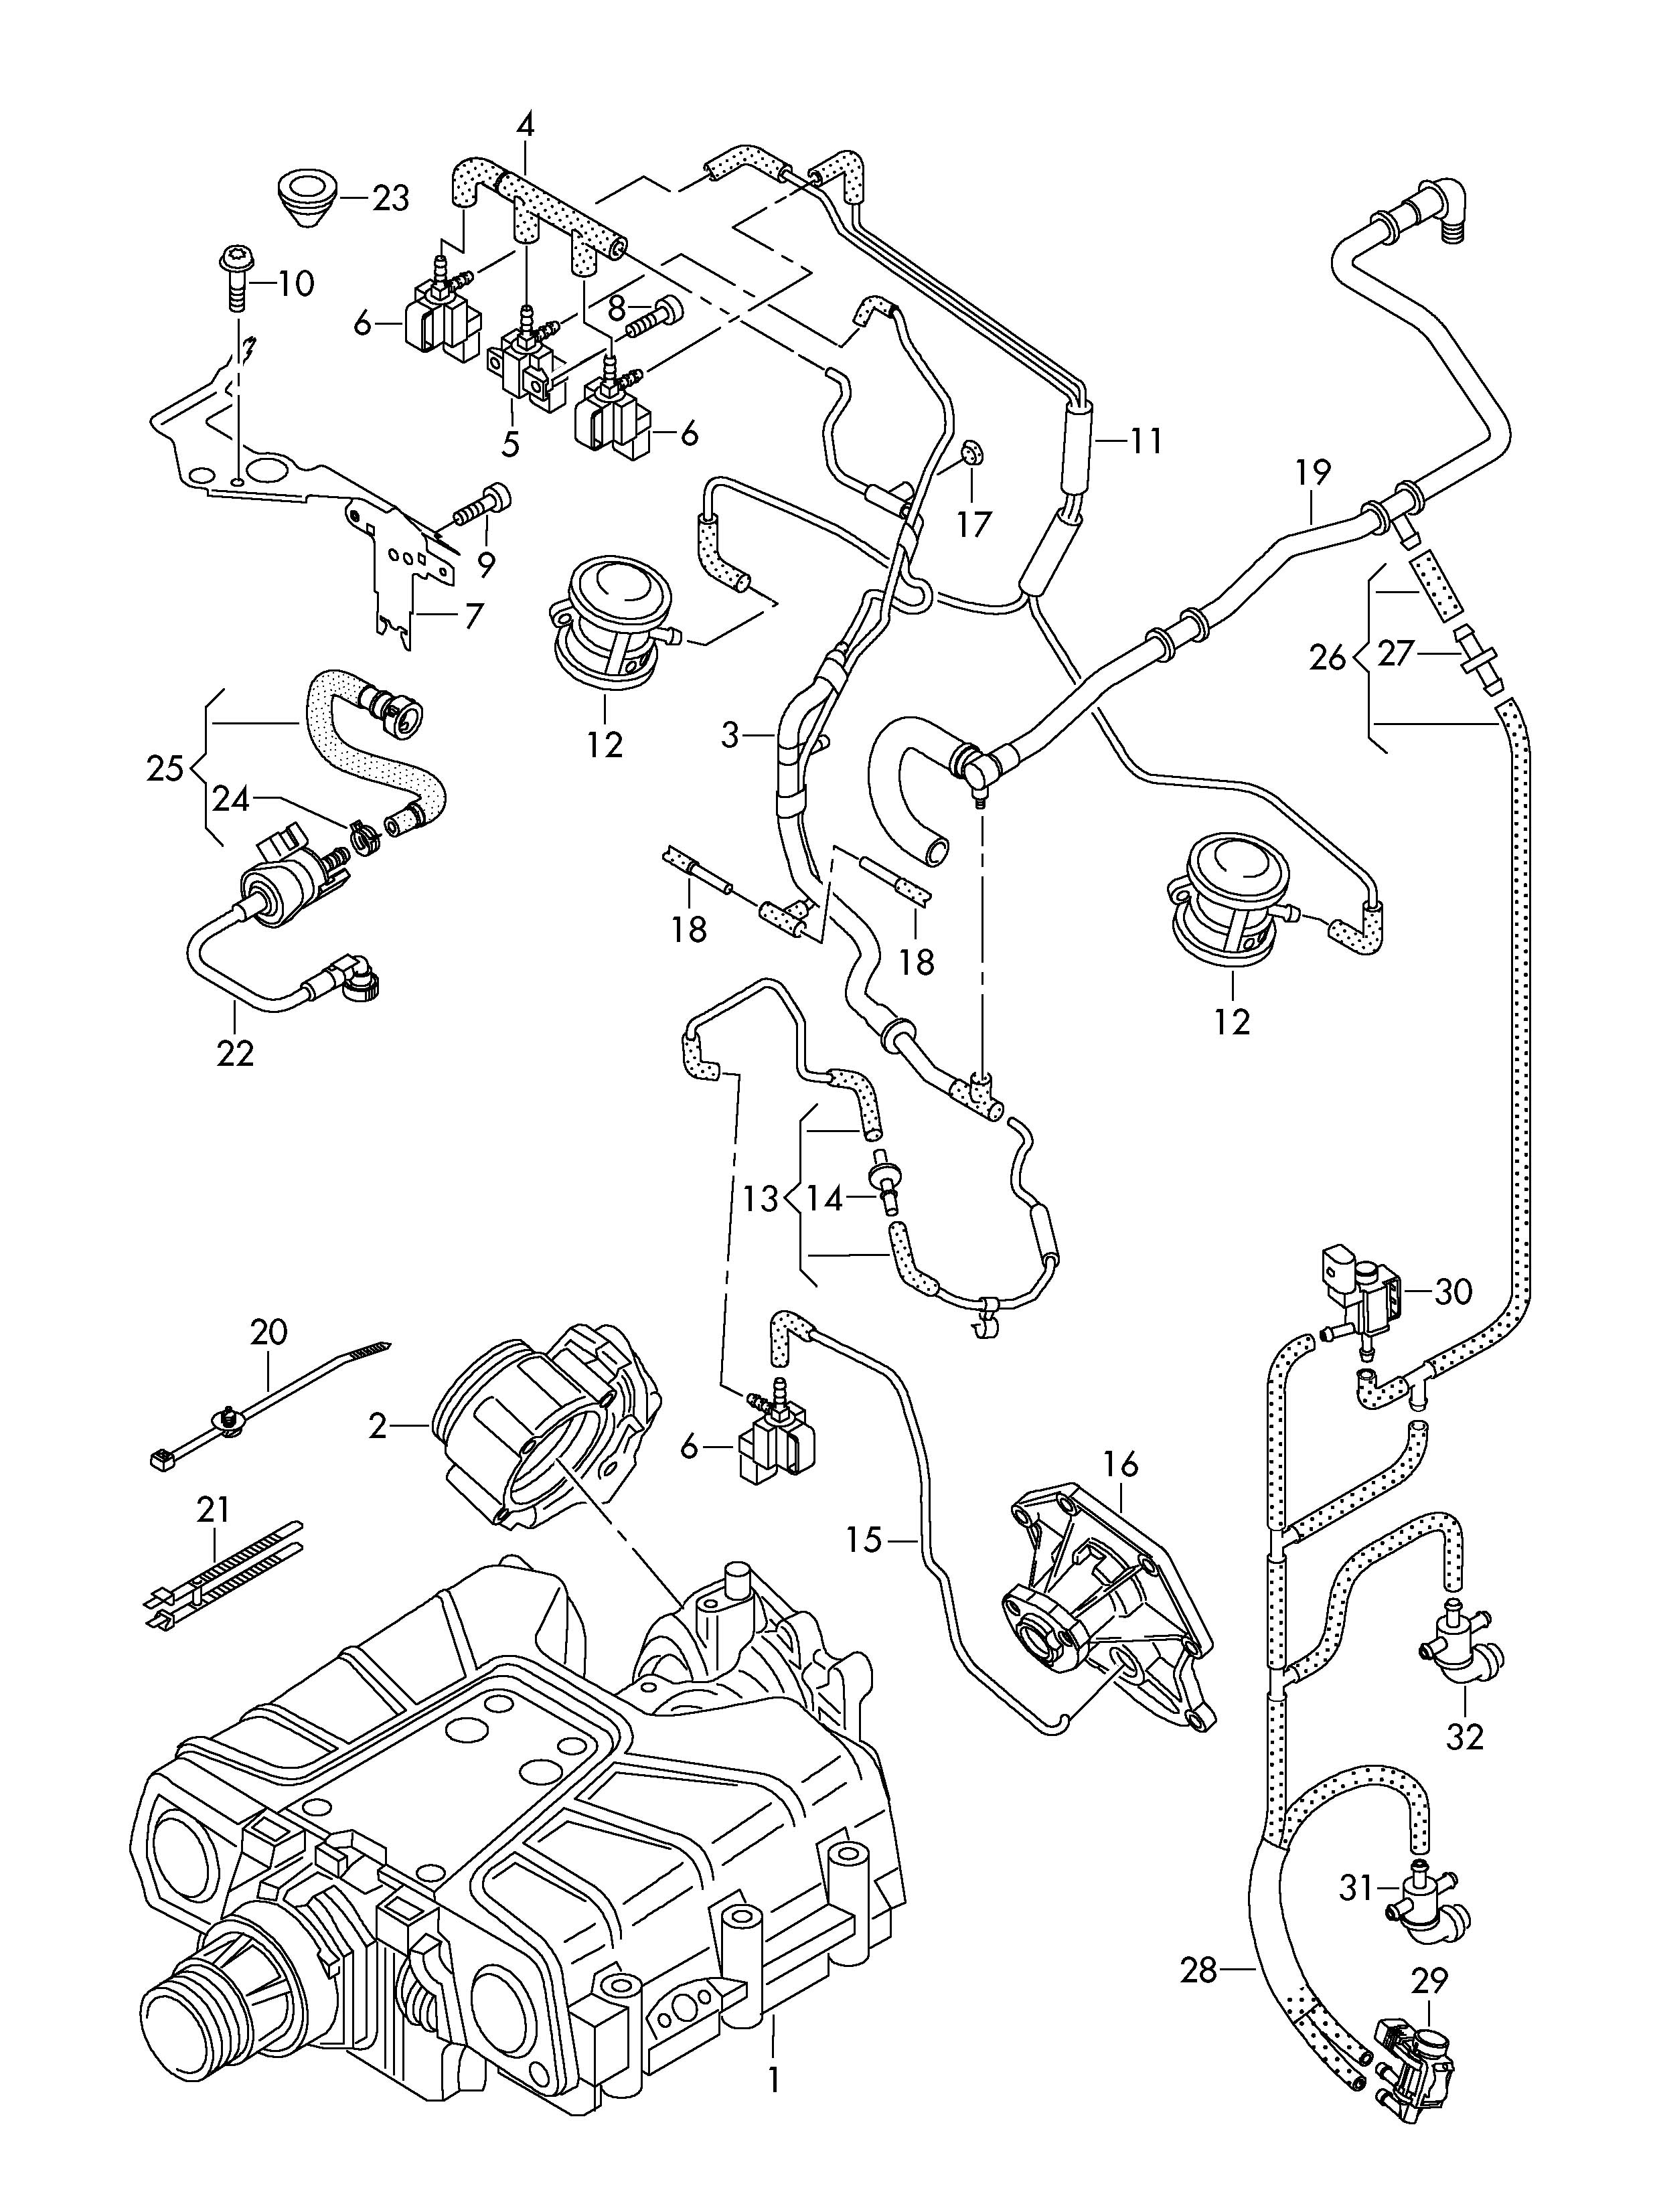 Vw Routan Engine Diagram. Diagram. Auto Wiring Diagram